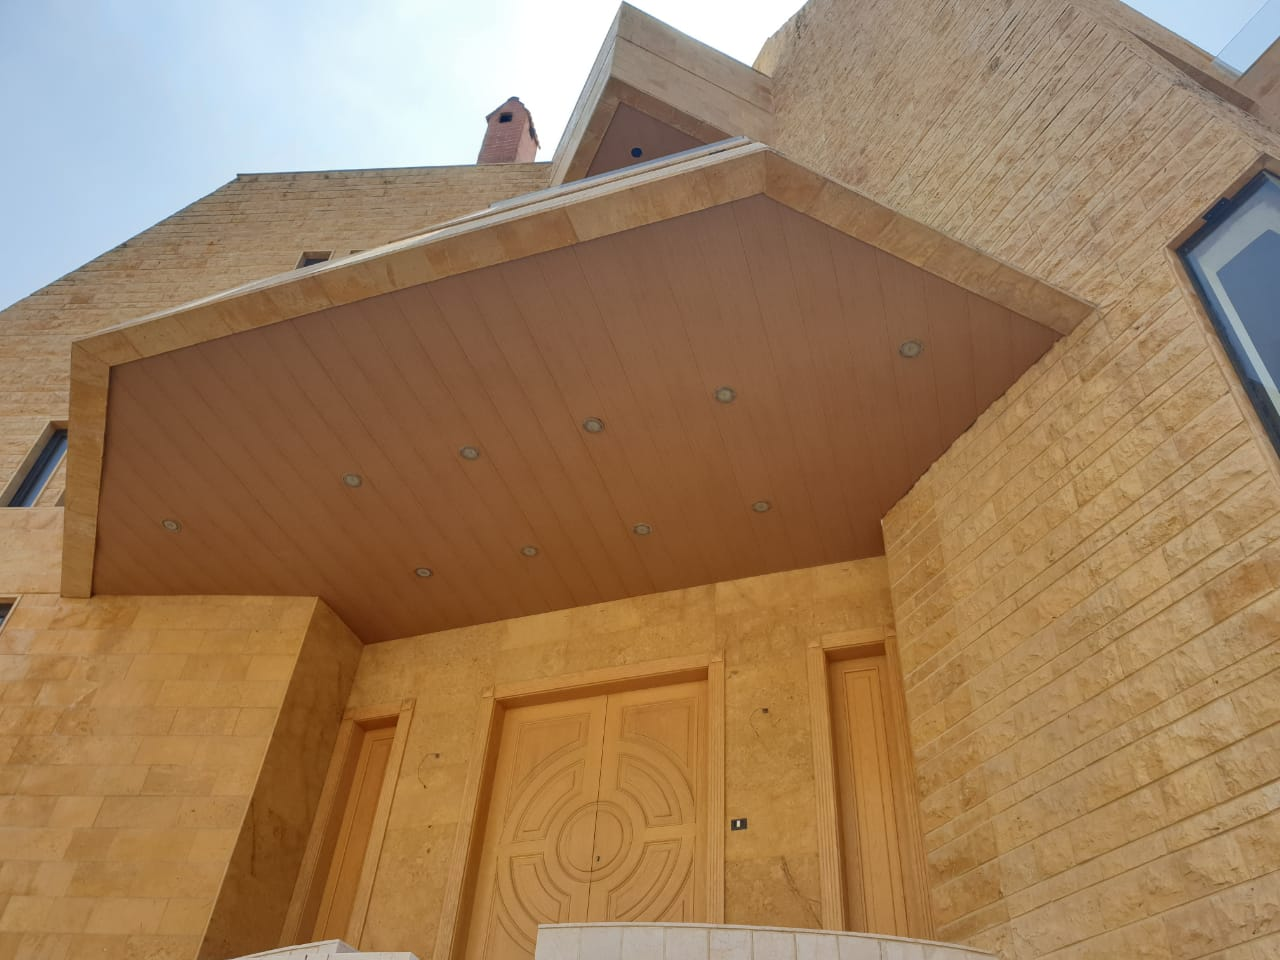 A beautiful villa for sale in Cornet el Hamra, real estate in Cornet el hamra, Buy sell properties in Cornet el hamra